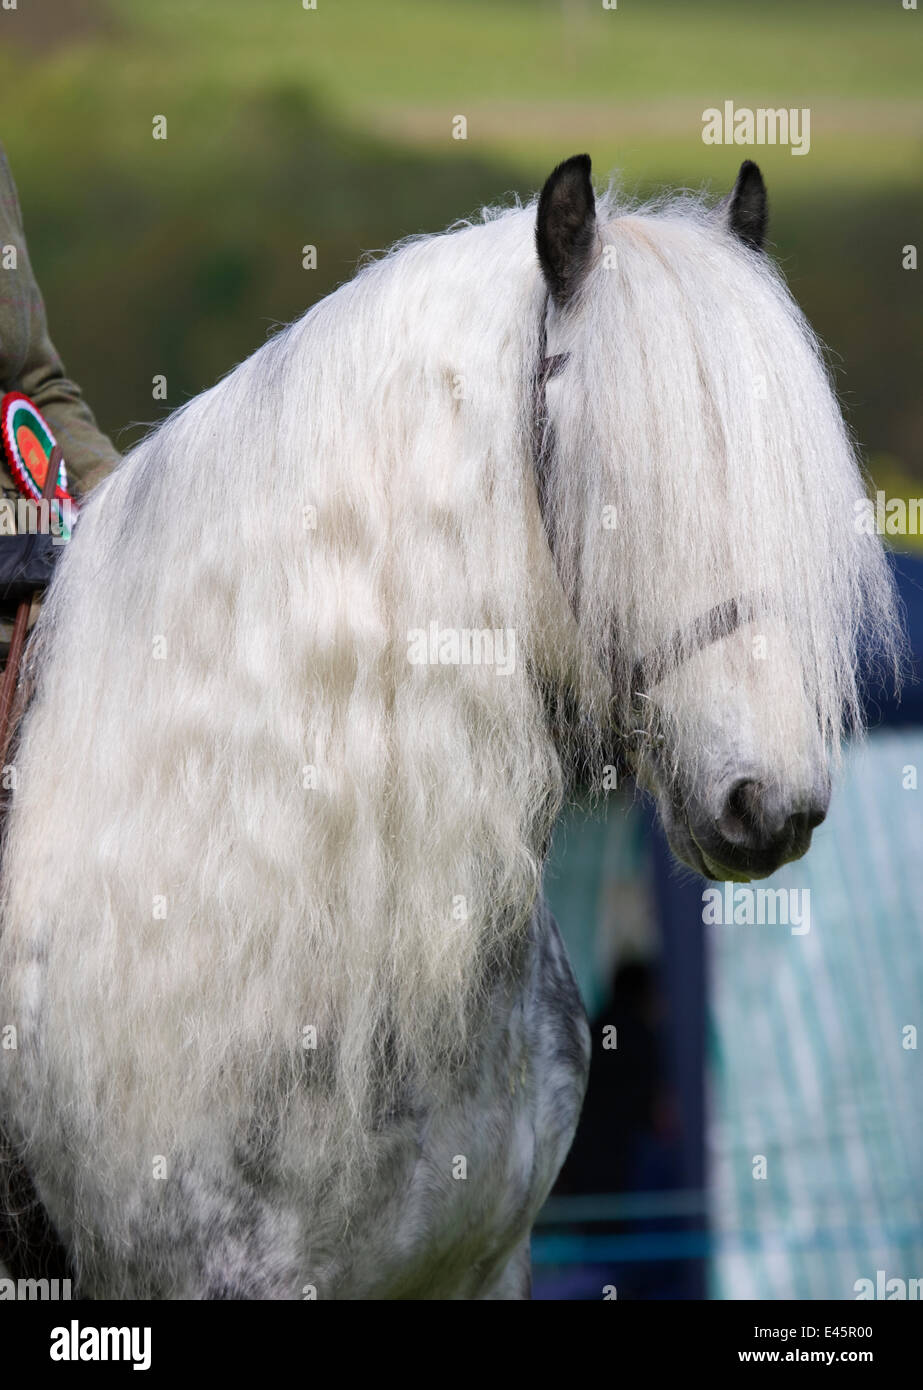 Head portrait of a rare grey Yorkshire Dales gelding (Equus caballus) with long mane, at Glanusk Estate, Wales, - Stock Image